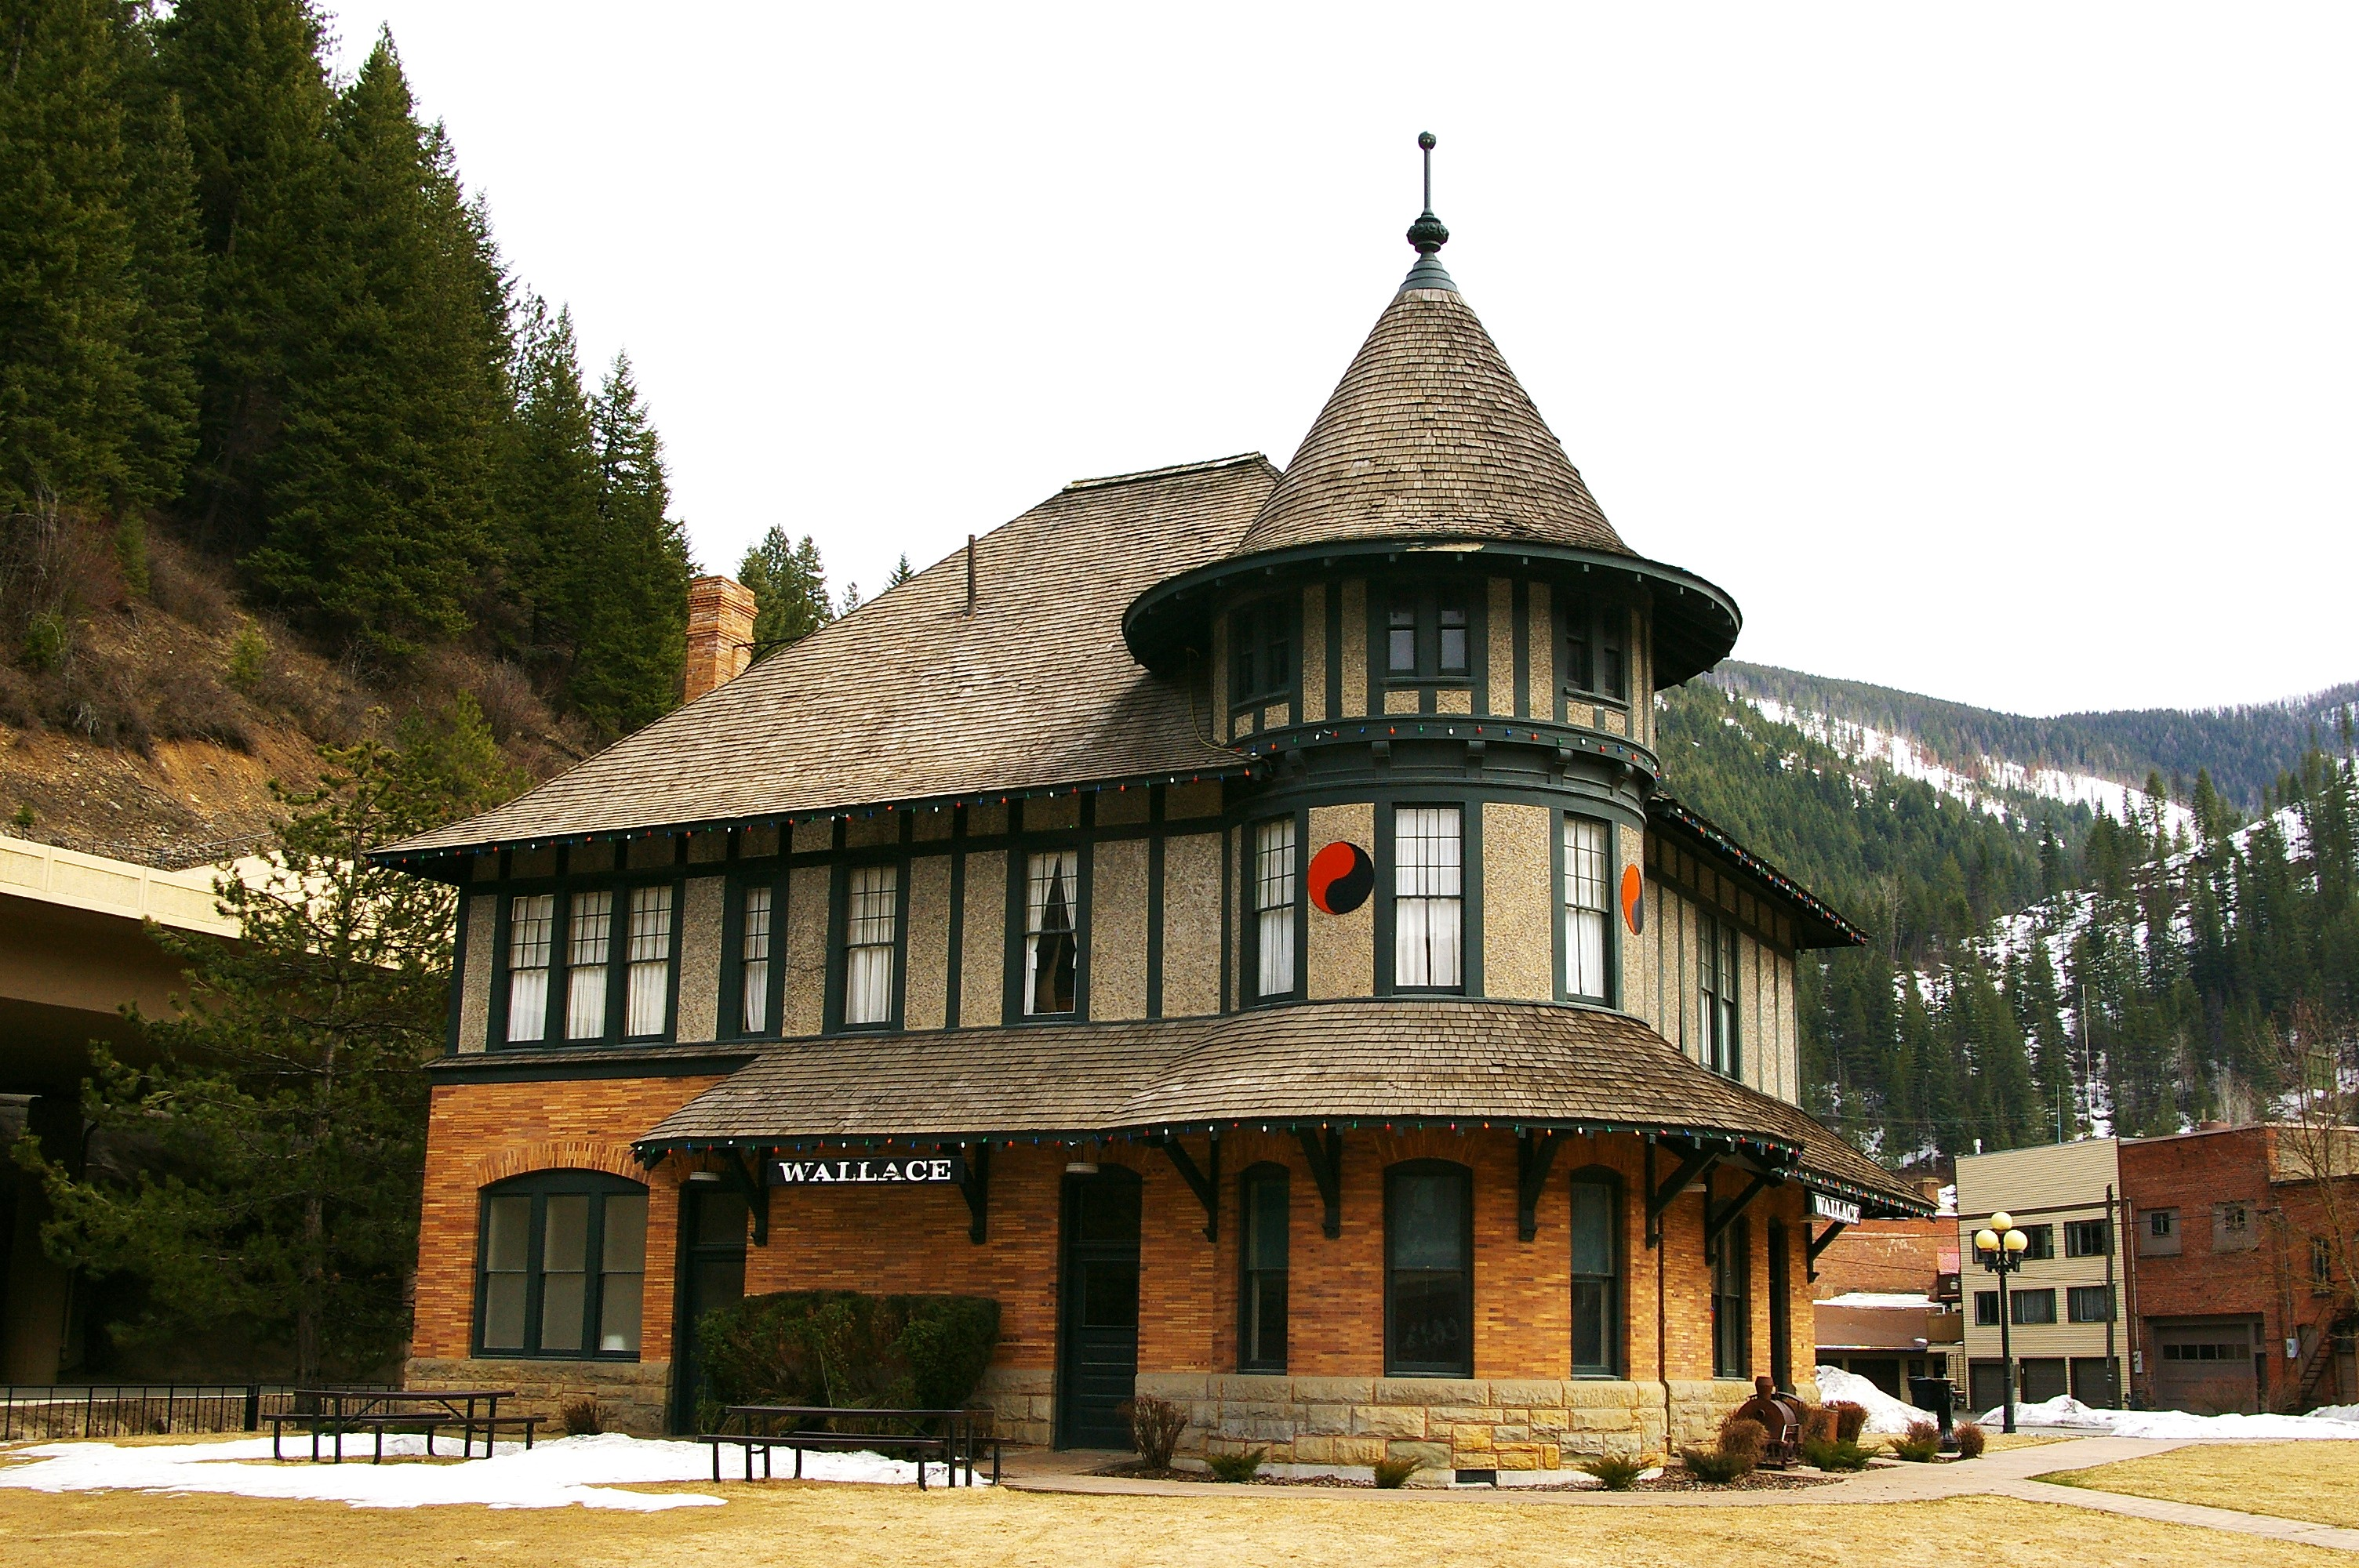 Wallace, ID train station Author Ron Reiring